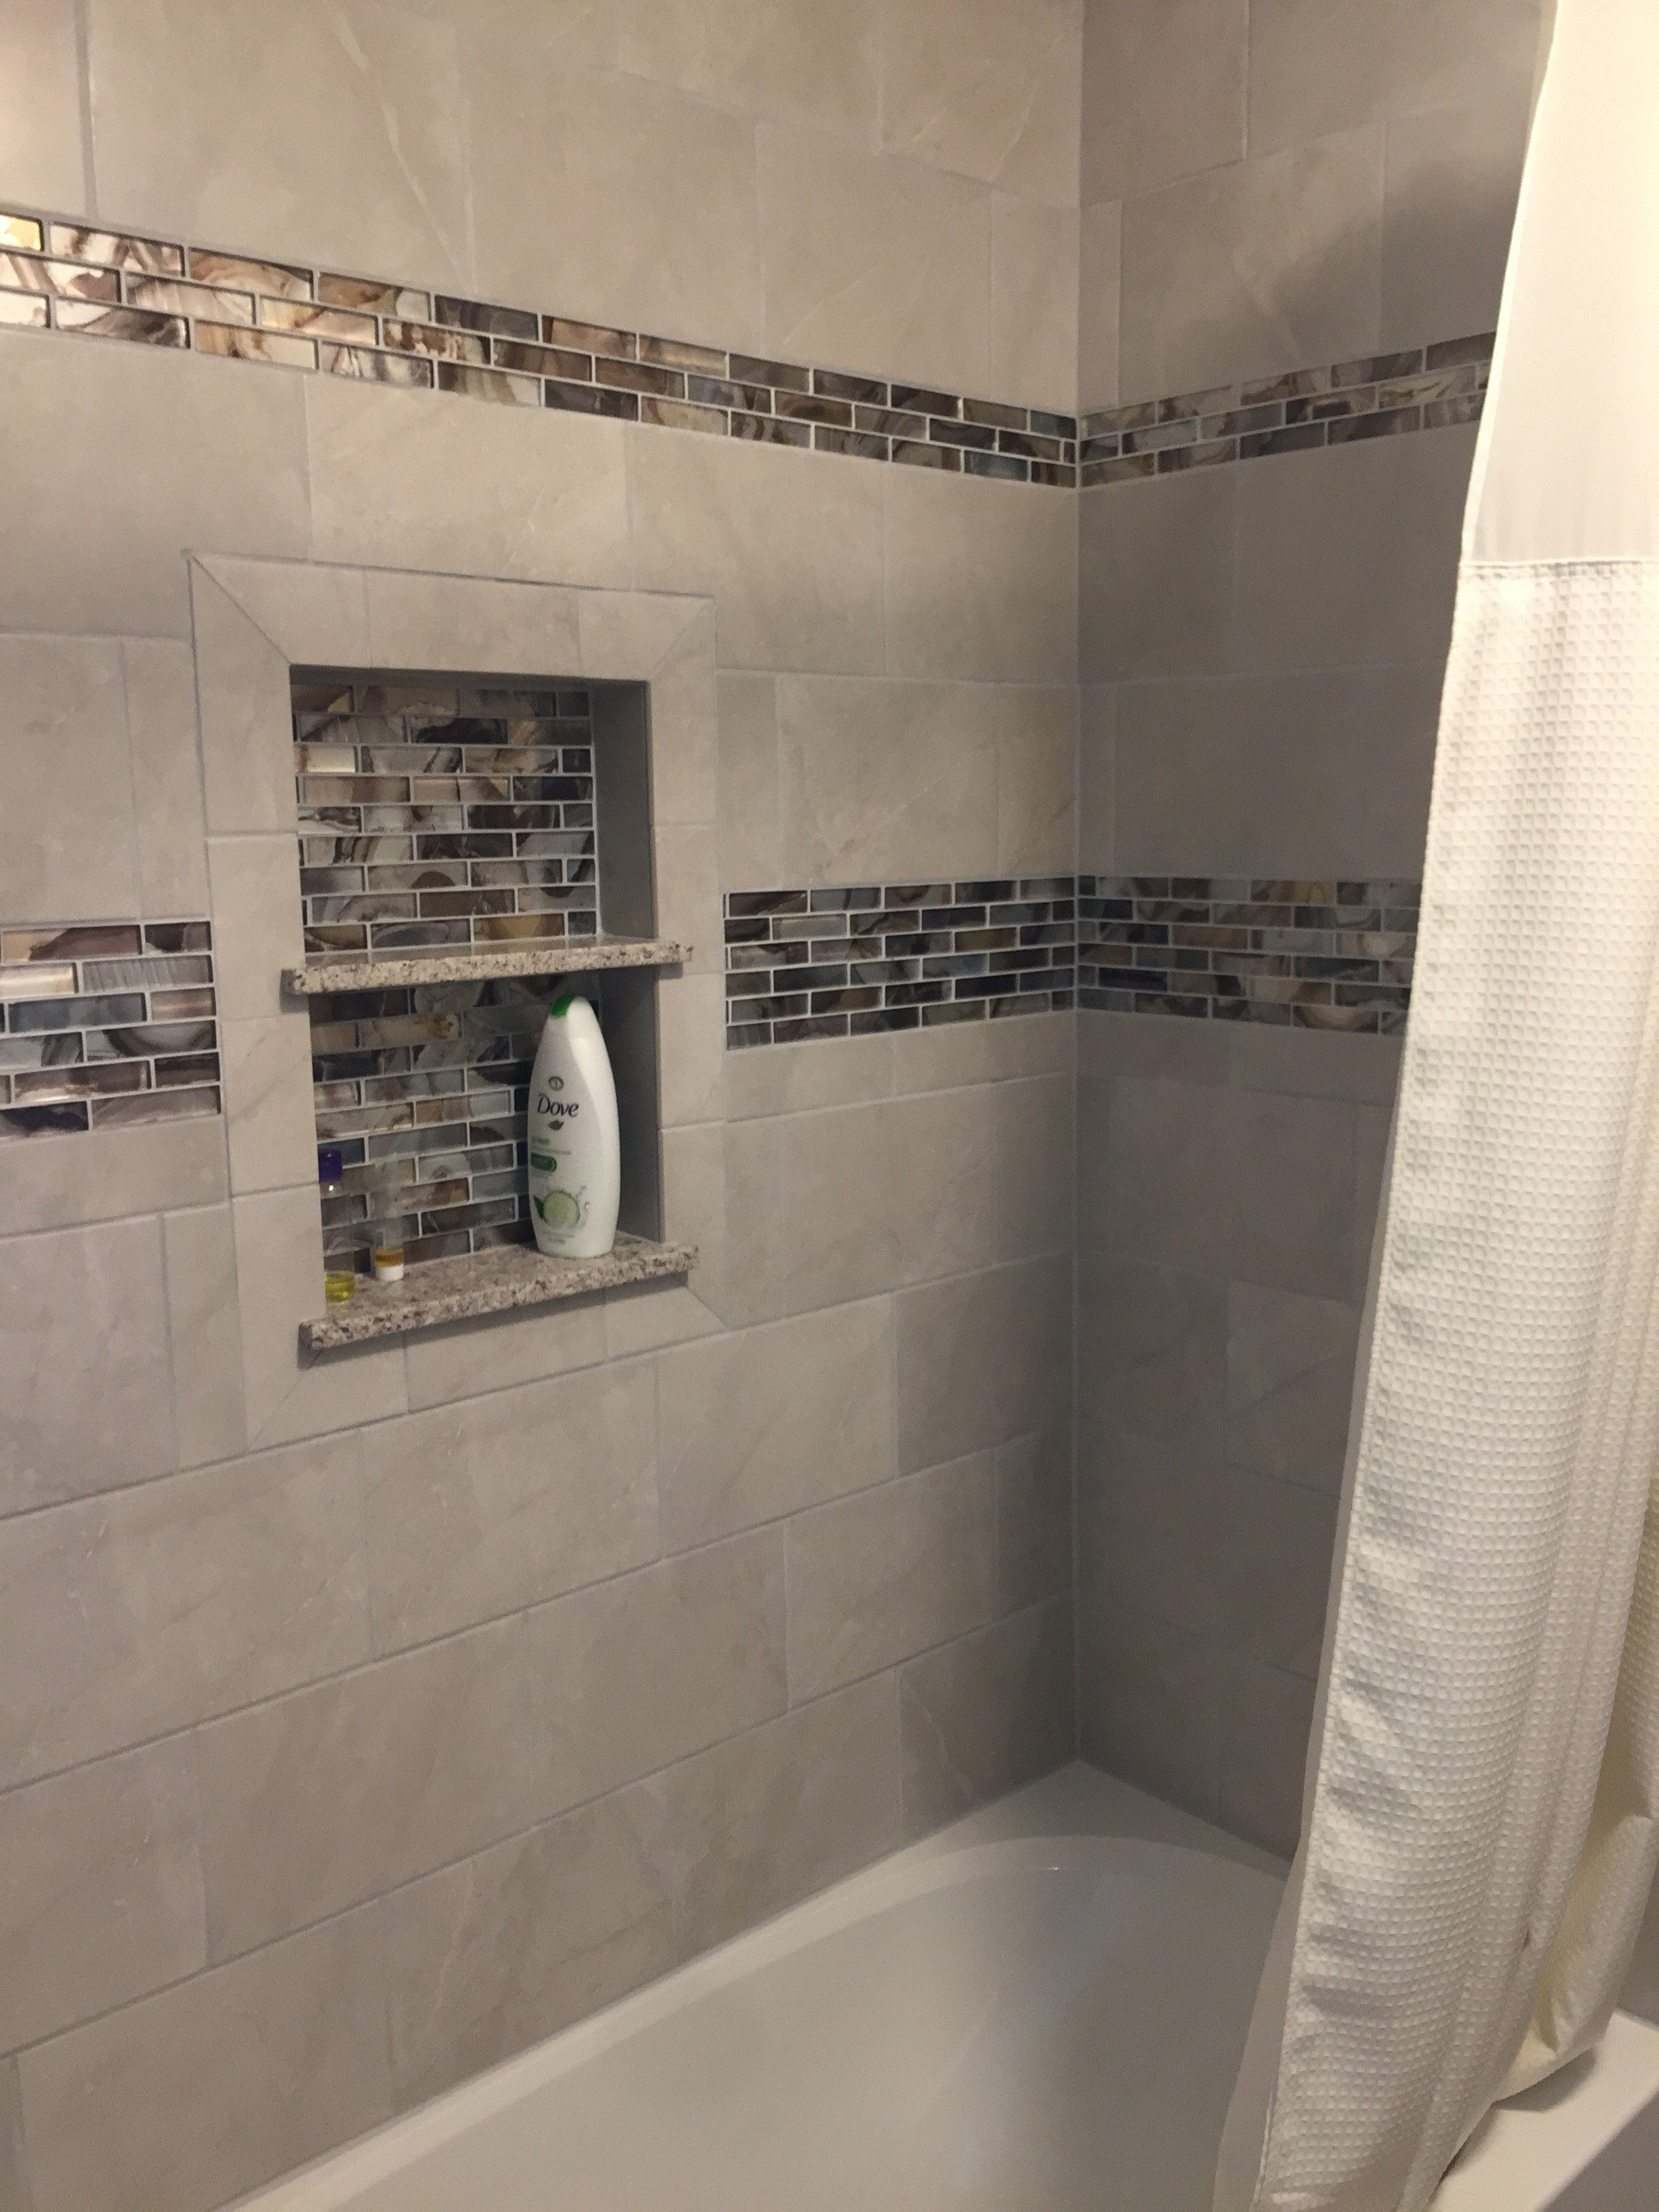 Shower Tile Mosaic Linear Mosaic Accent Tile Custom Tile Shower Niche Niche Shelves Shower Storage Bathroom Storage Bath Tub Tile Sho With Images Tile Shower Niche